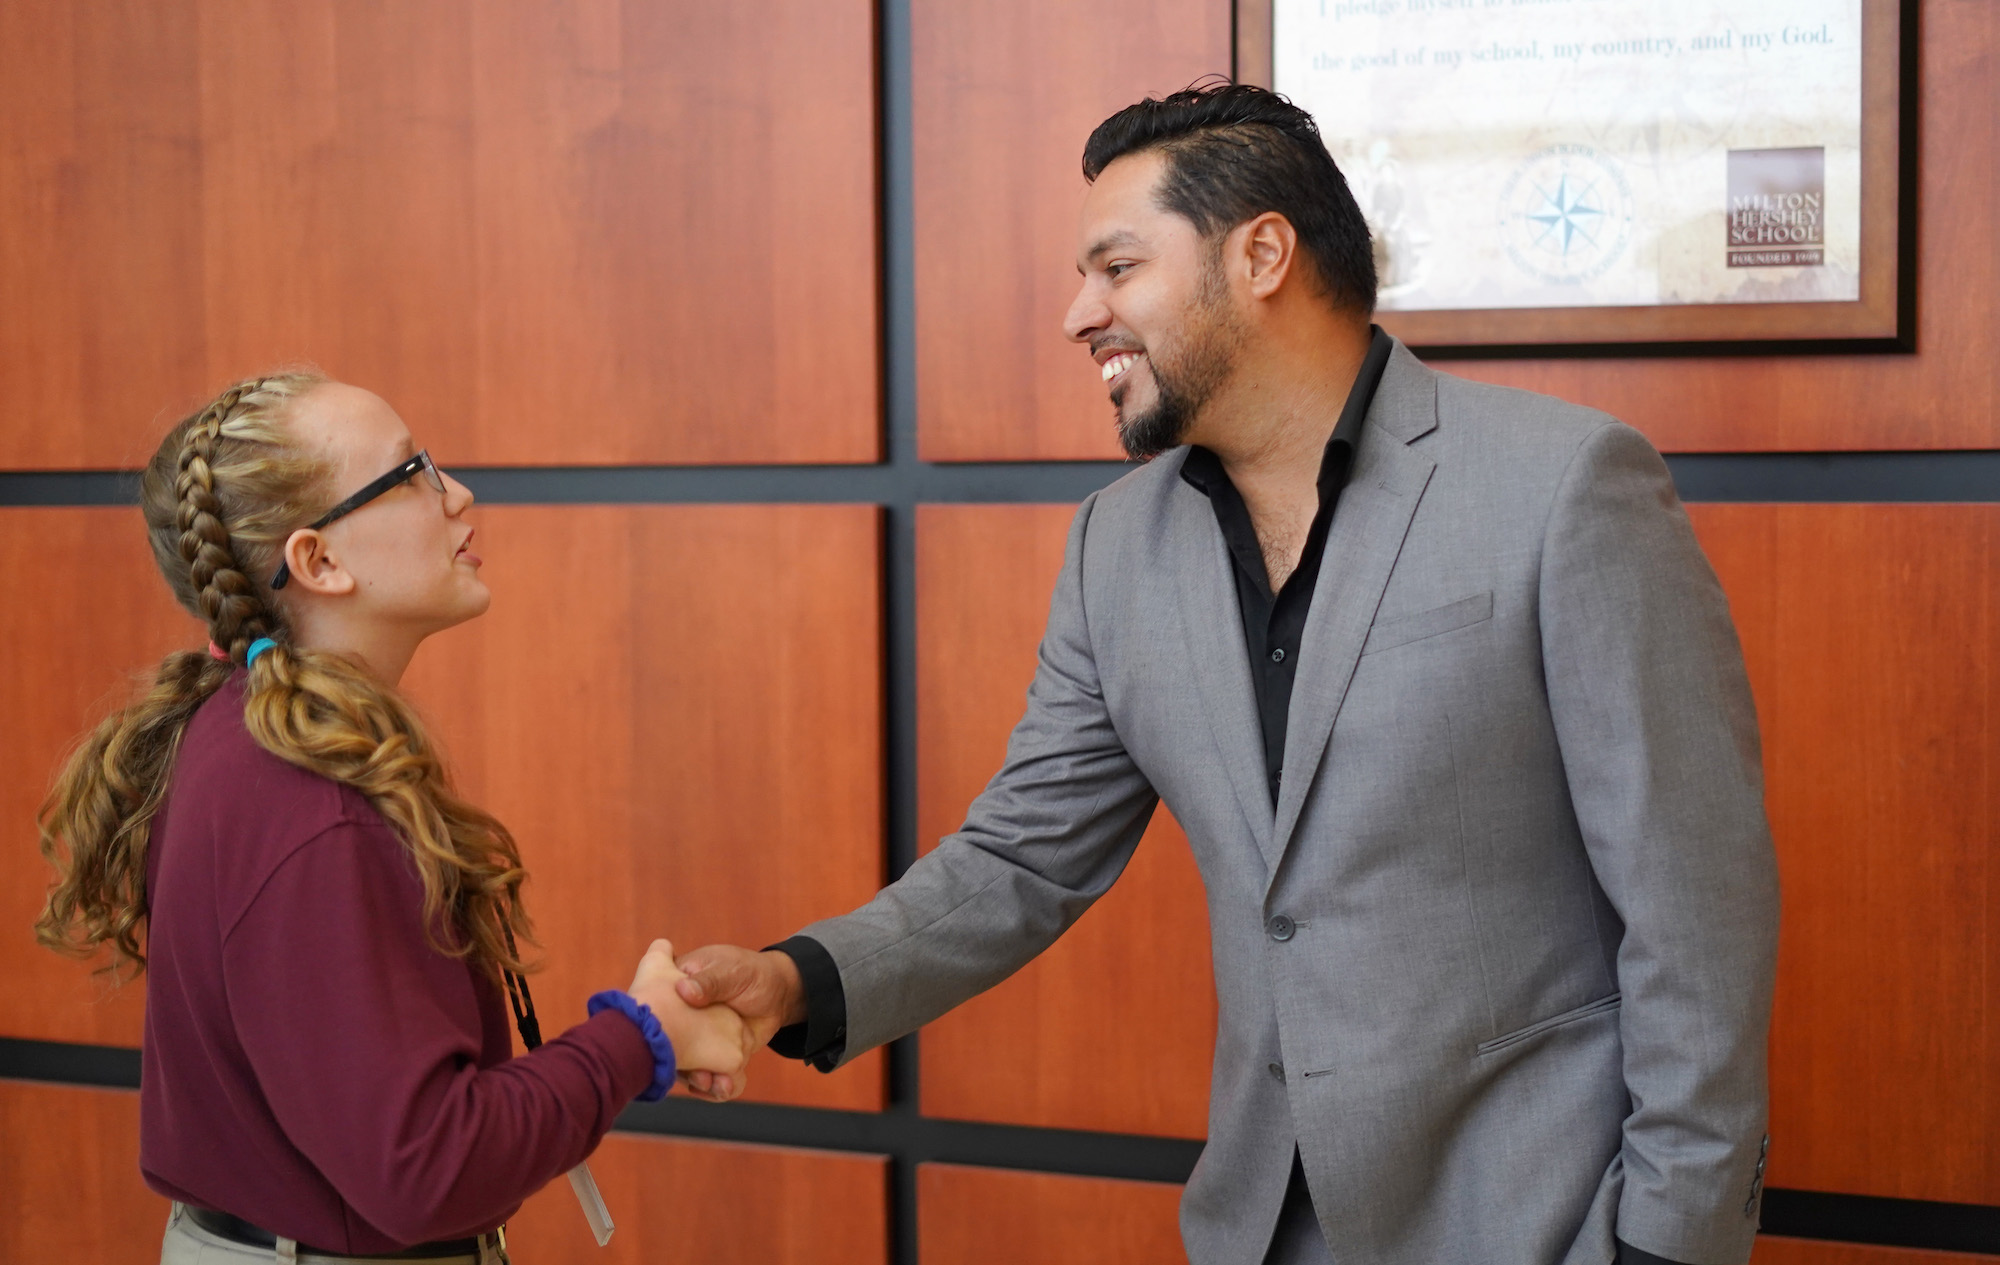 A former student of the original Freedom Writers shakes the hand of an MHS student.